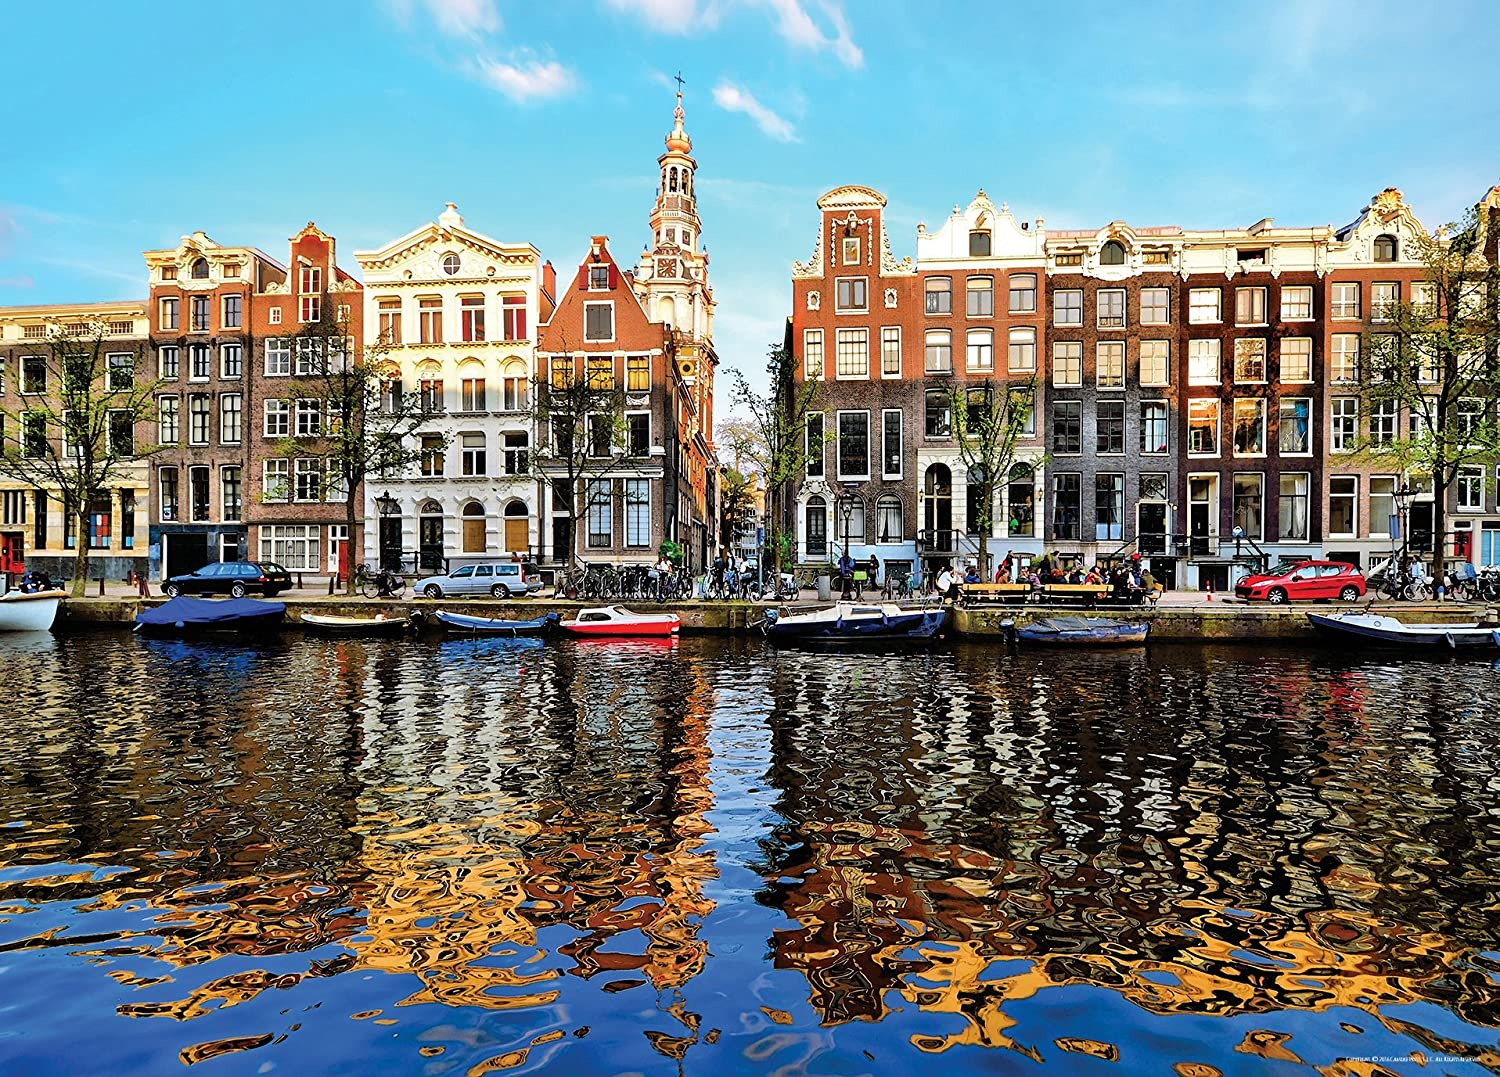 an Amsterdam Reflexion Camike Press 1000 Piece Jigsaw Puzzle for Adults 20 x 27 Teens and Family